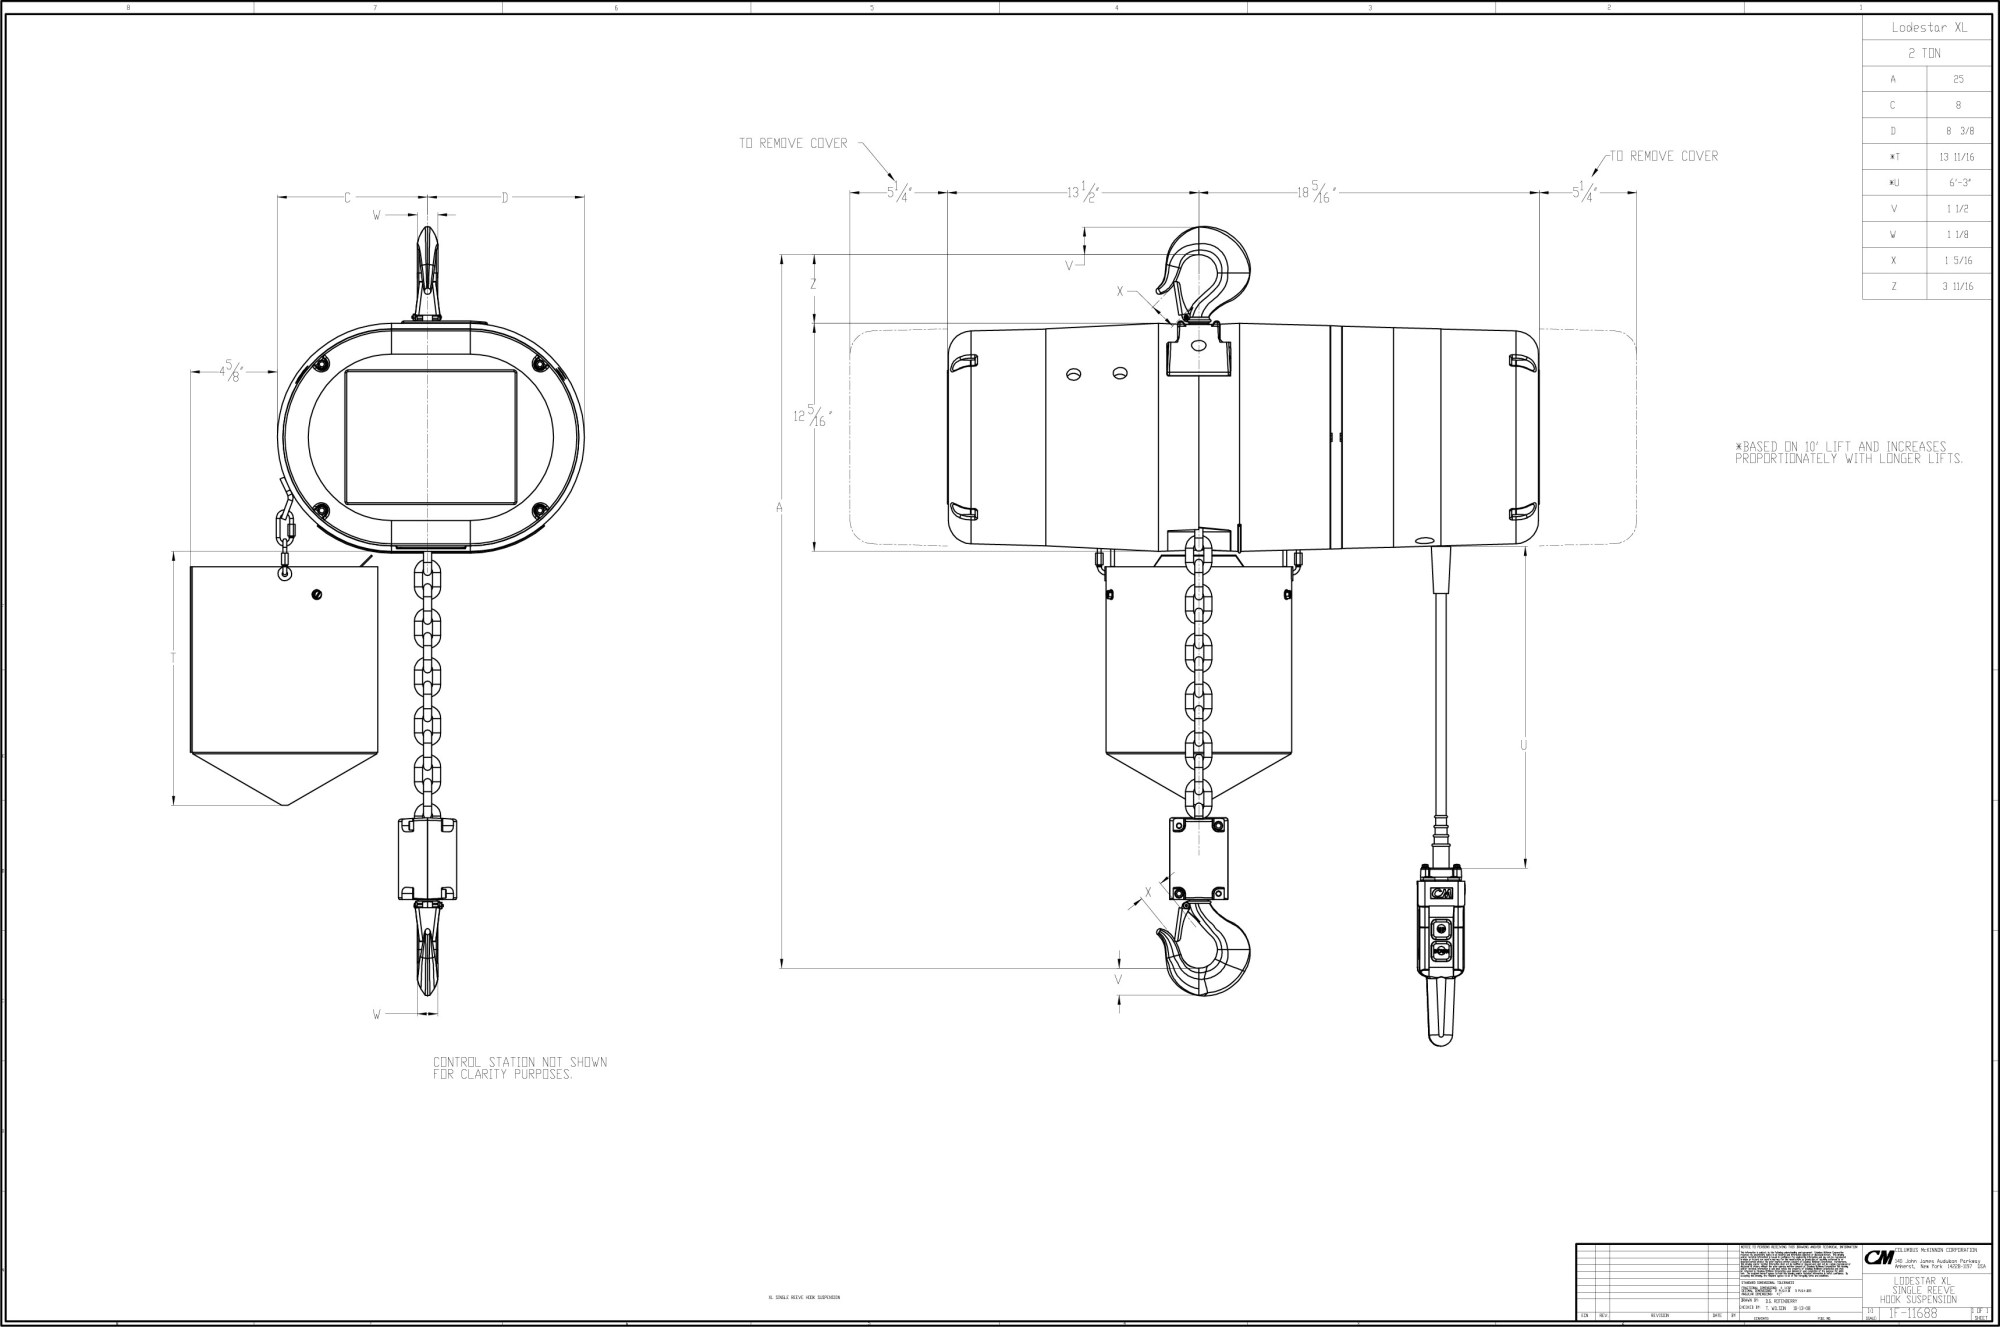 hight resolution of 1 ton cm chain hoist wiring diagram engine diagram and 2 ton electric chain hoist 2 ton coffing hoist parts